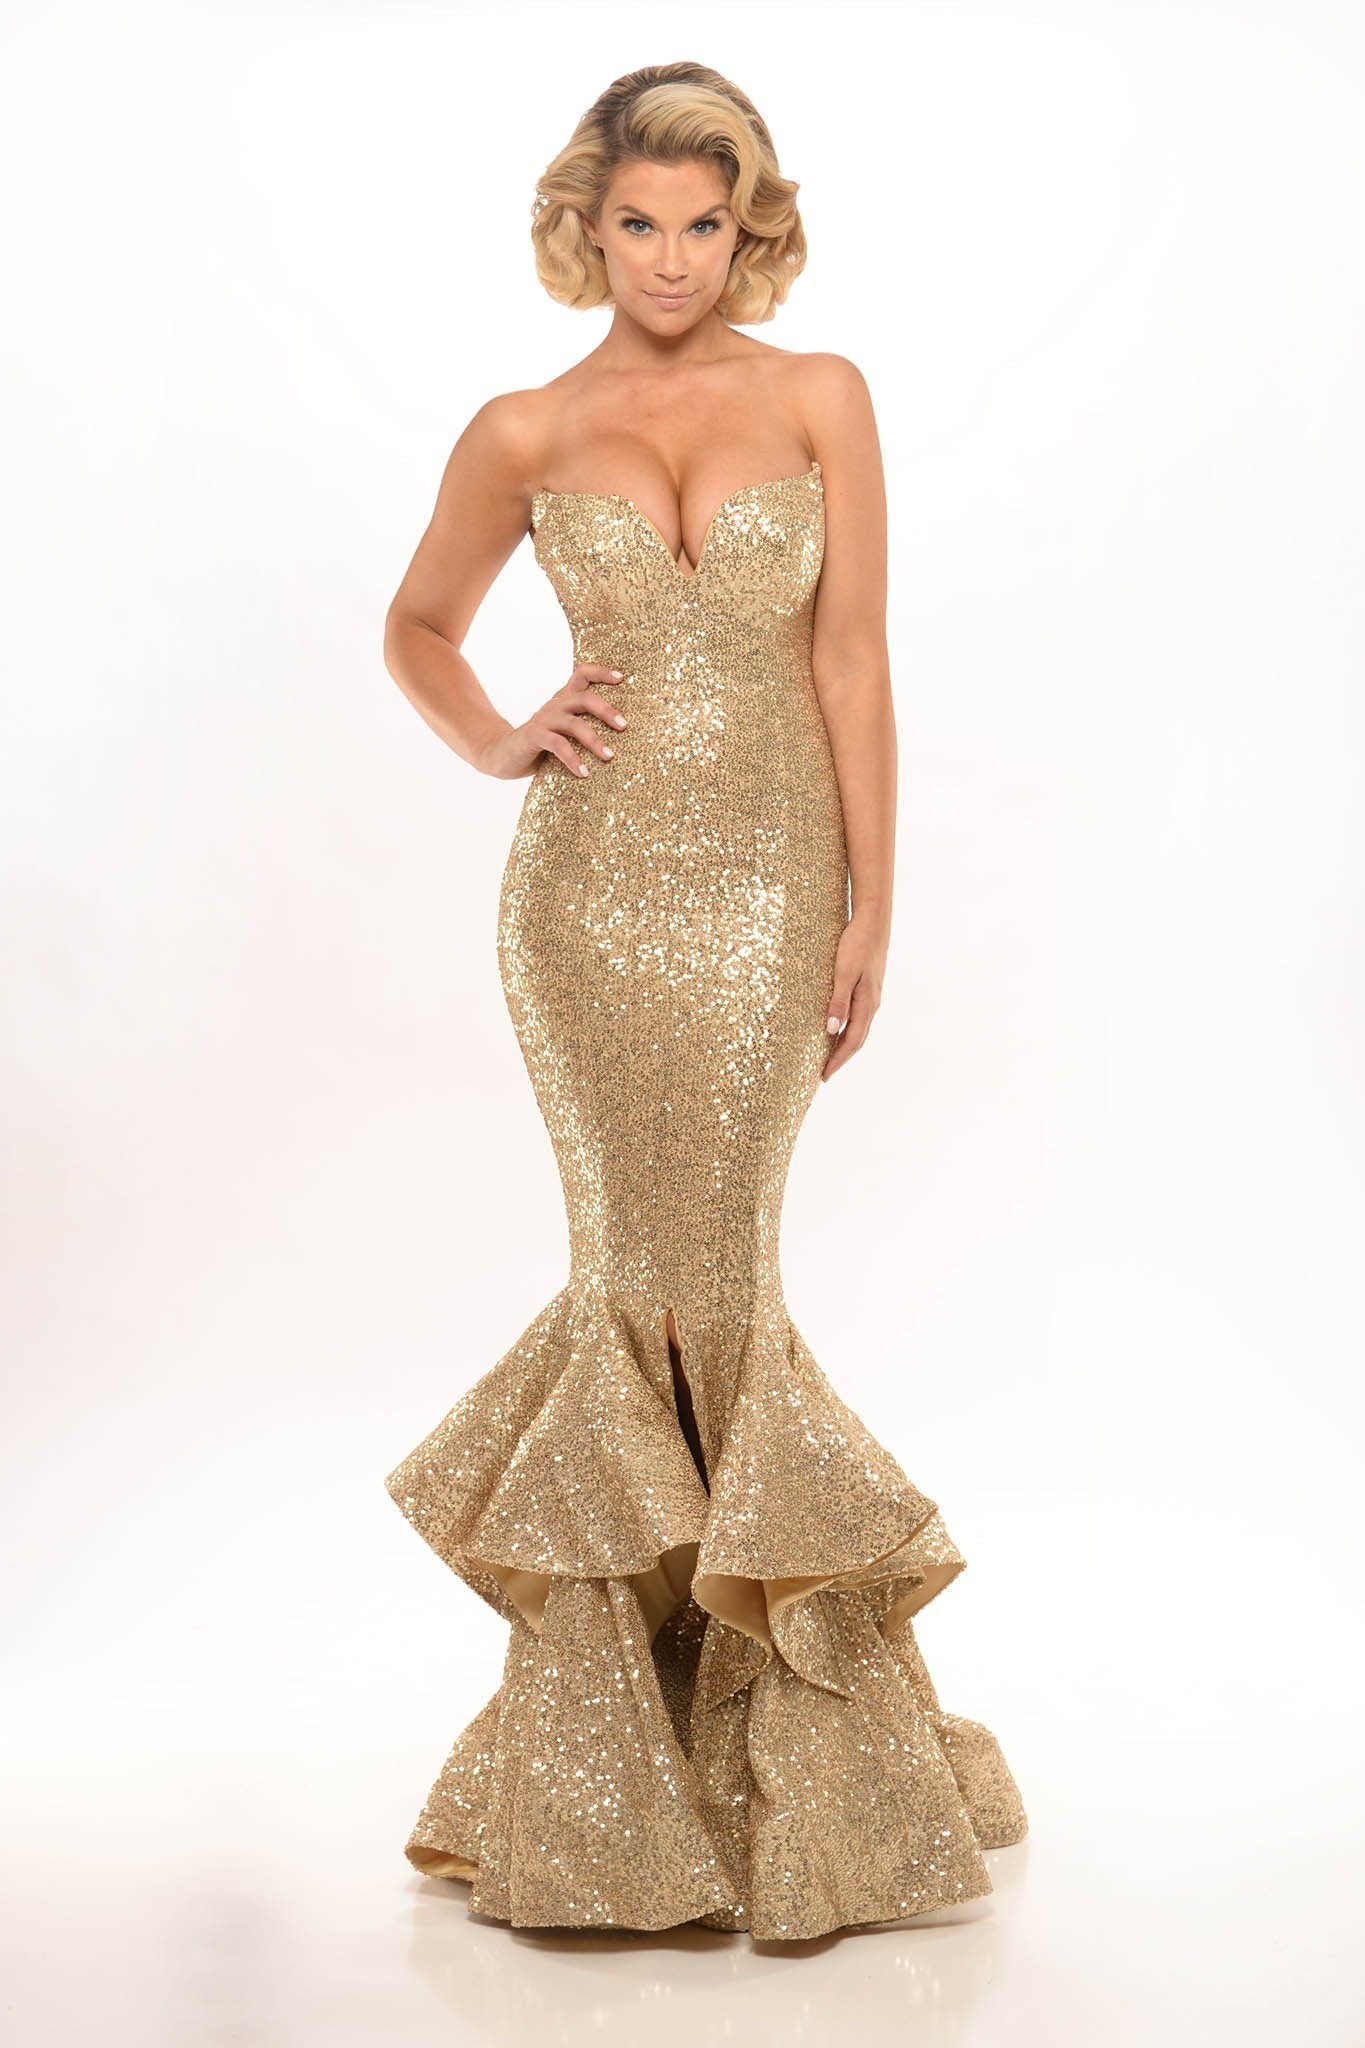 Designer gold sequin strapless deep sweetheart neckline mermaid gown with front split and ruffle hem